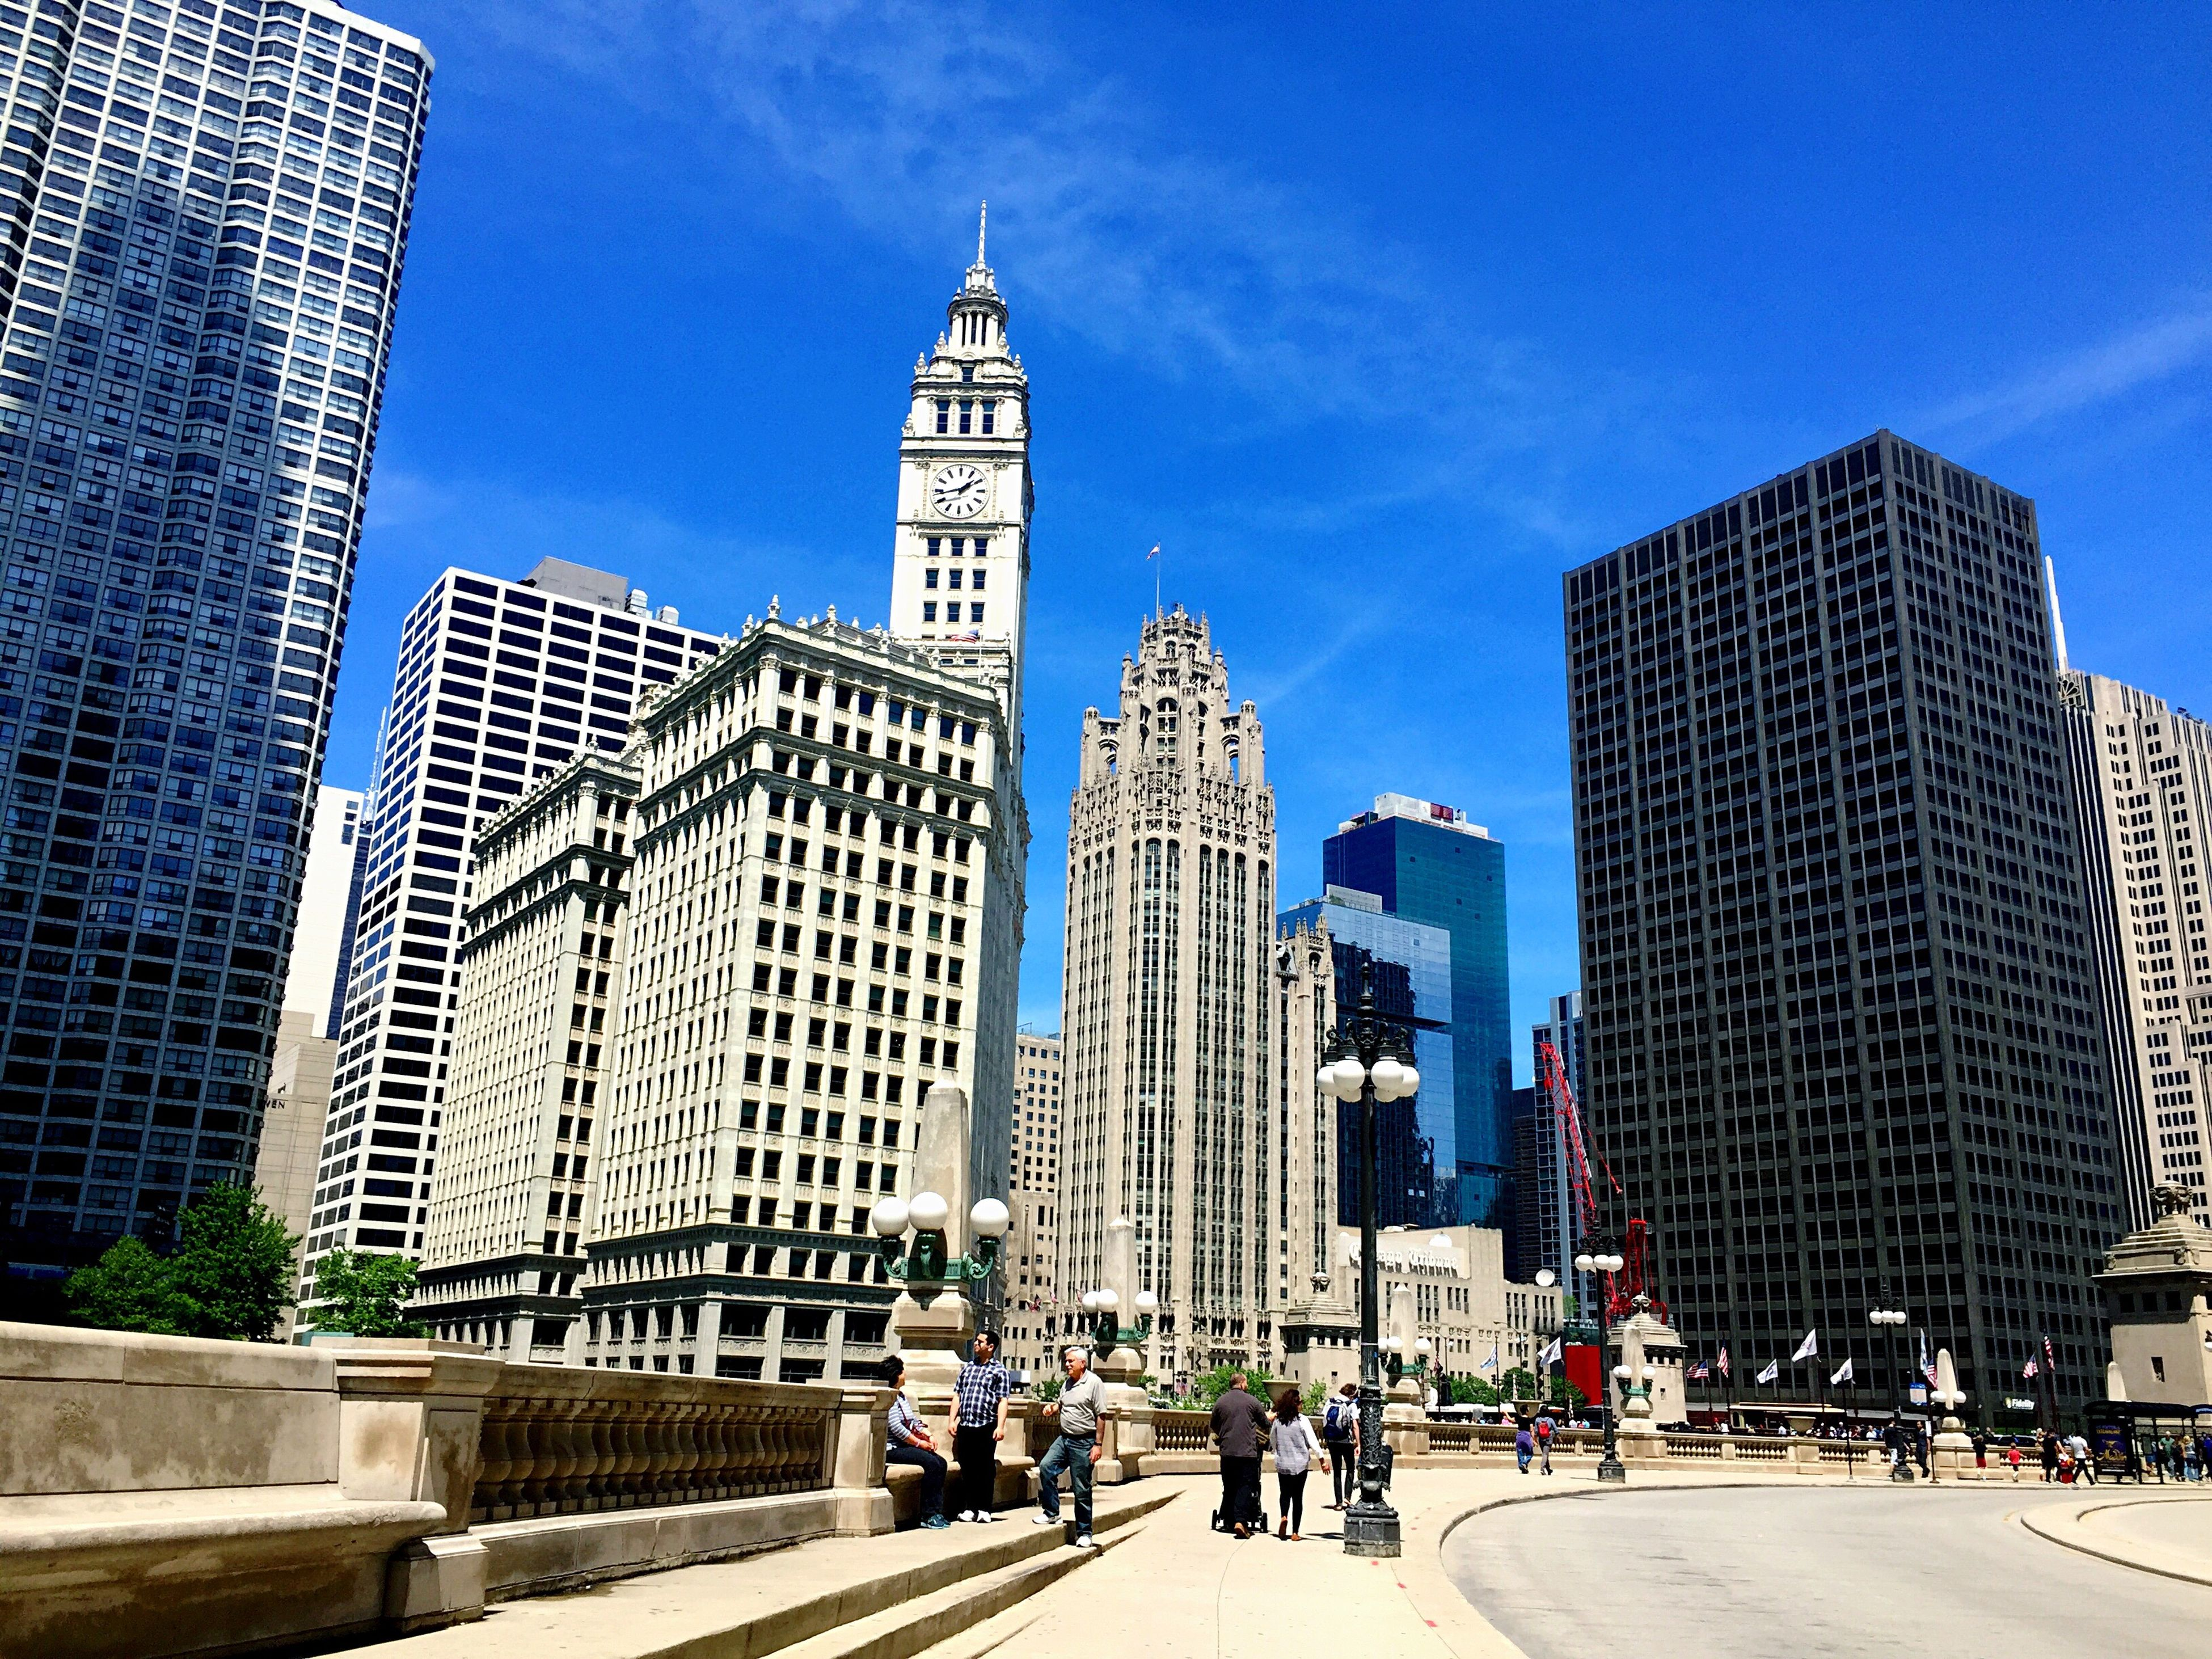 architecture, skyscraper, building exterior, built structure, city, tall - high, tower, modern, city life, travel destinations, sky, day, blue, outdoors, low angle view, large group of people, tall, downtown district, cityscape, real people, clear sky, urban skyline, office park, people